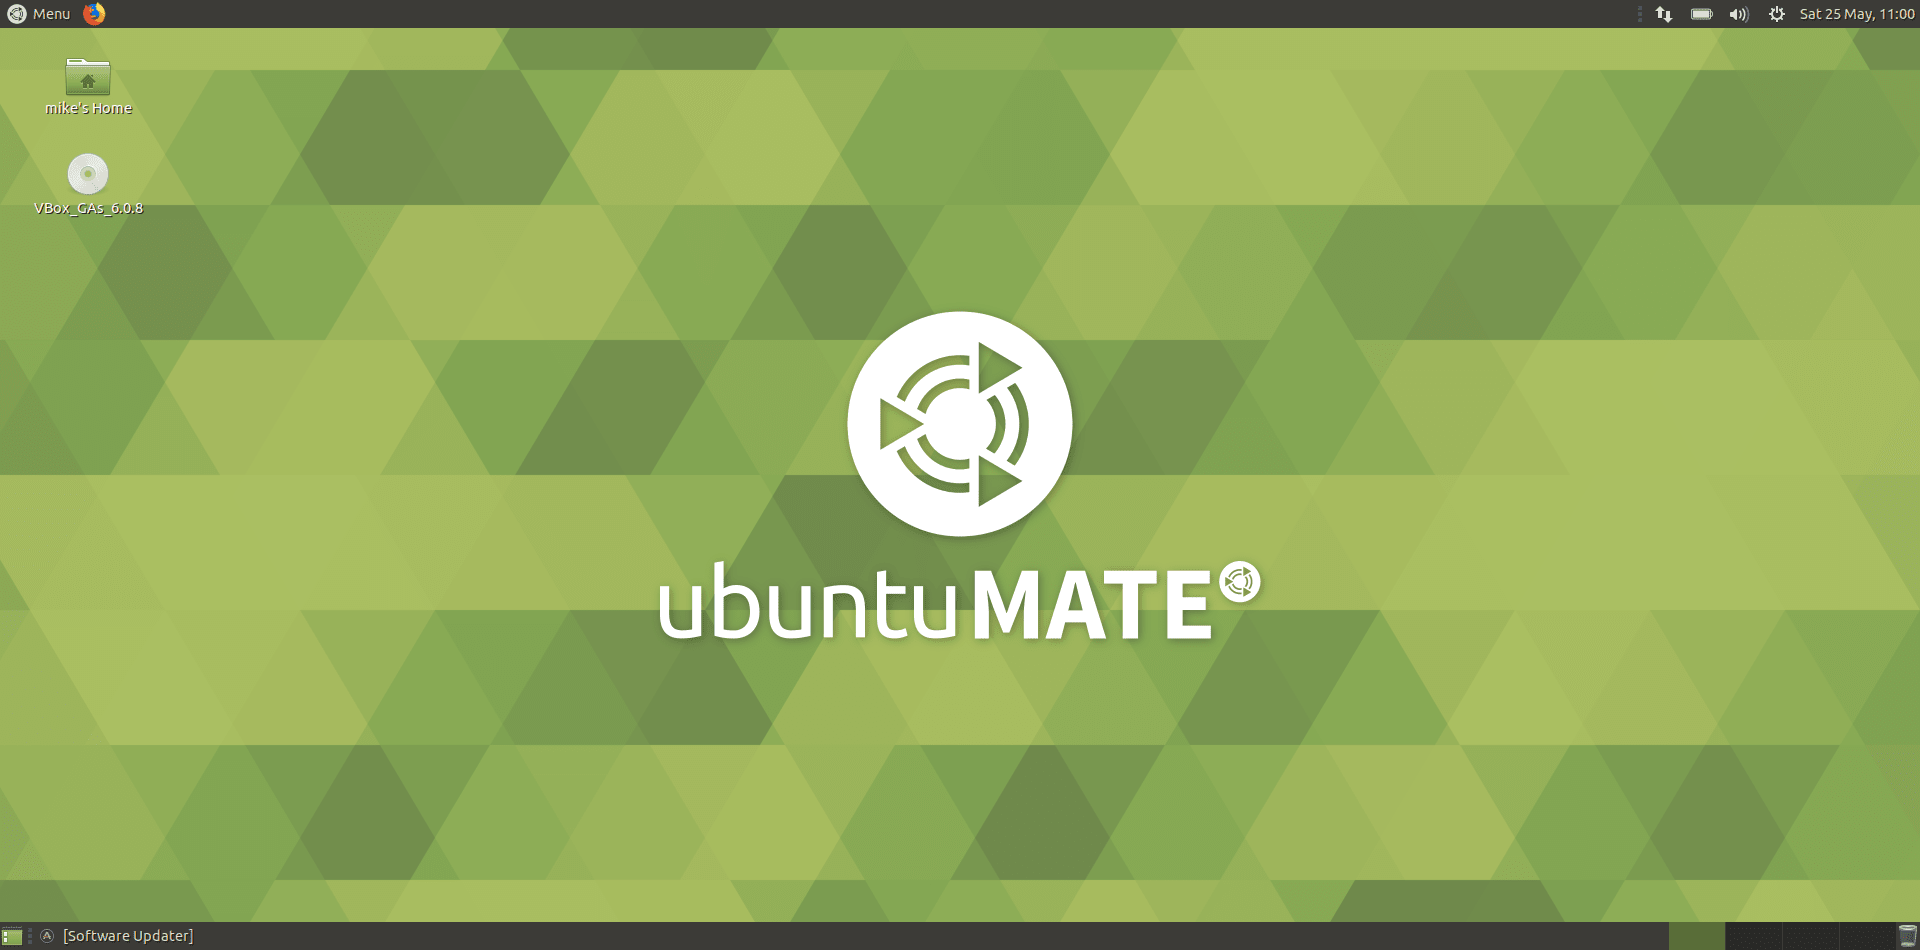 Ubuntu MATE Review